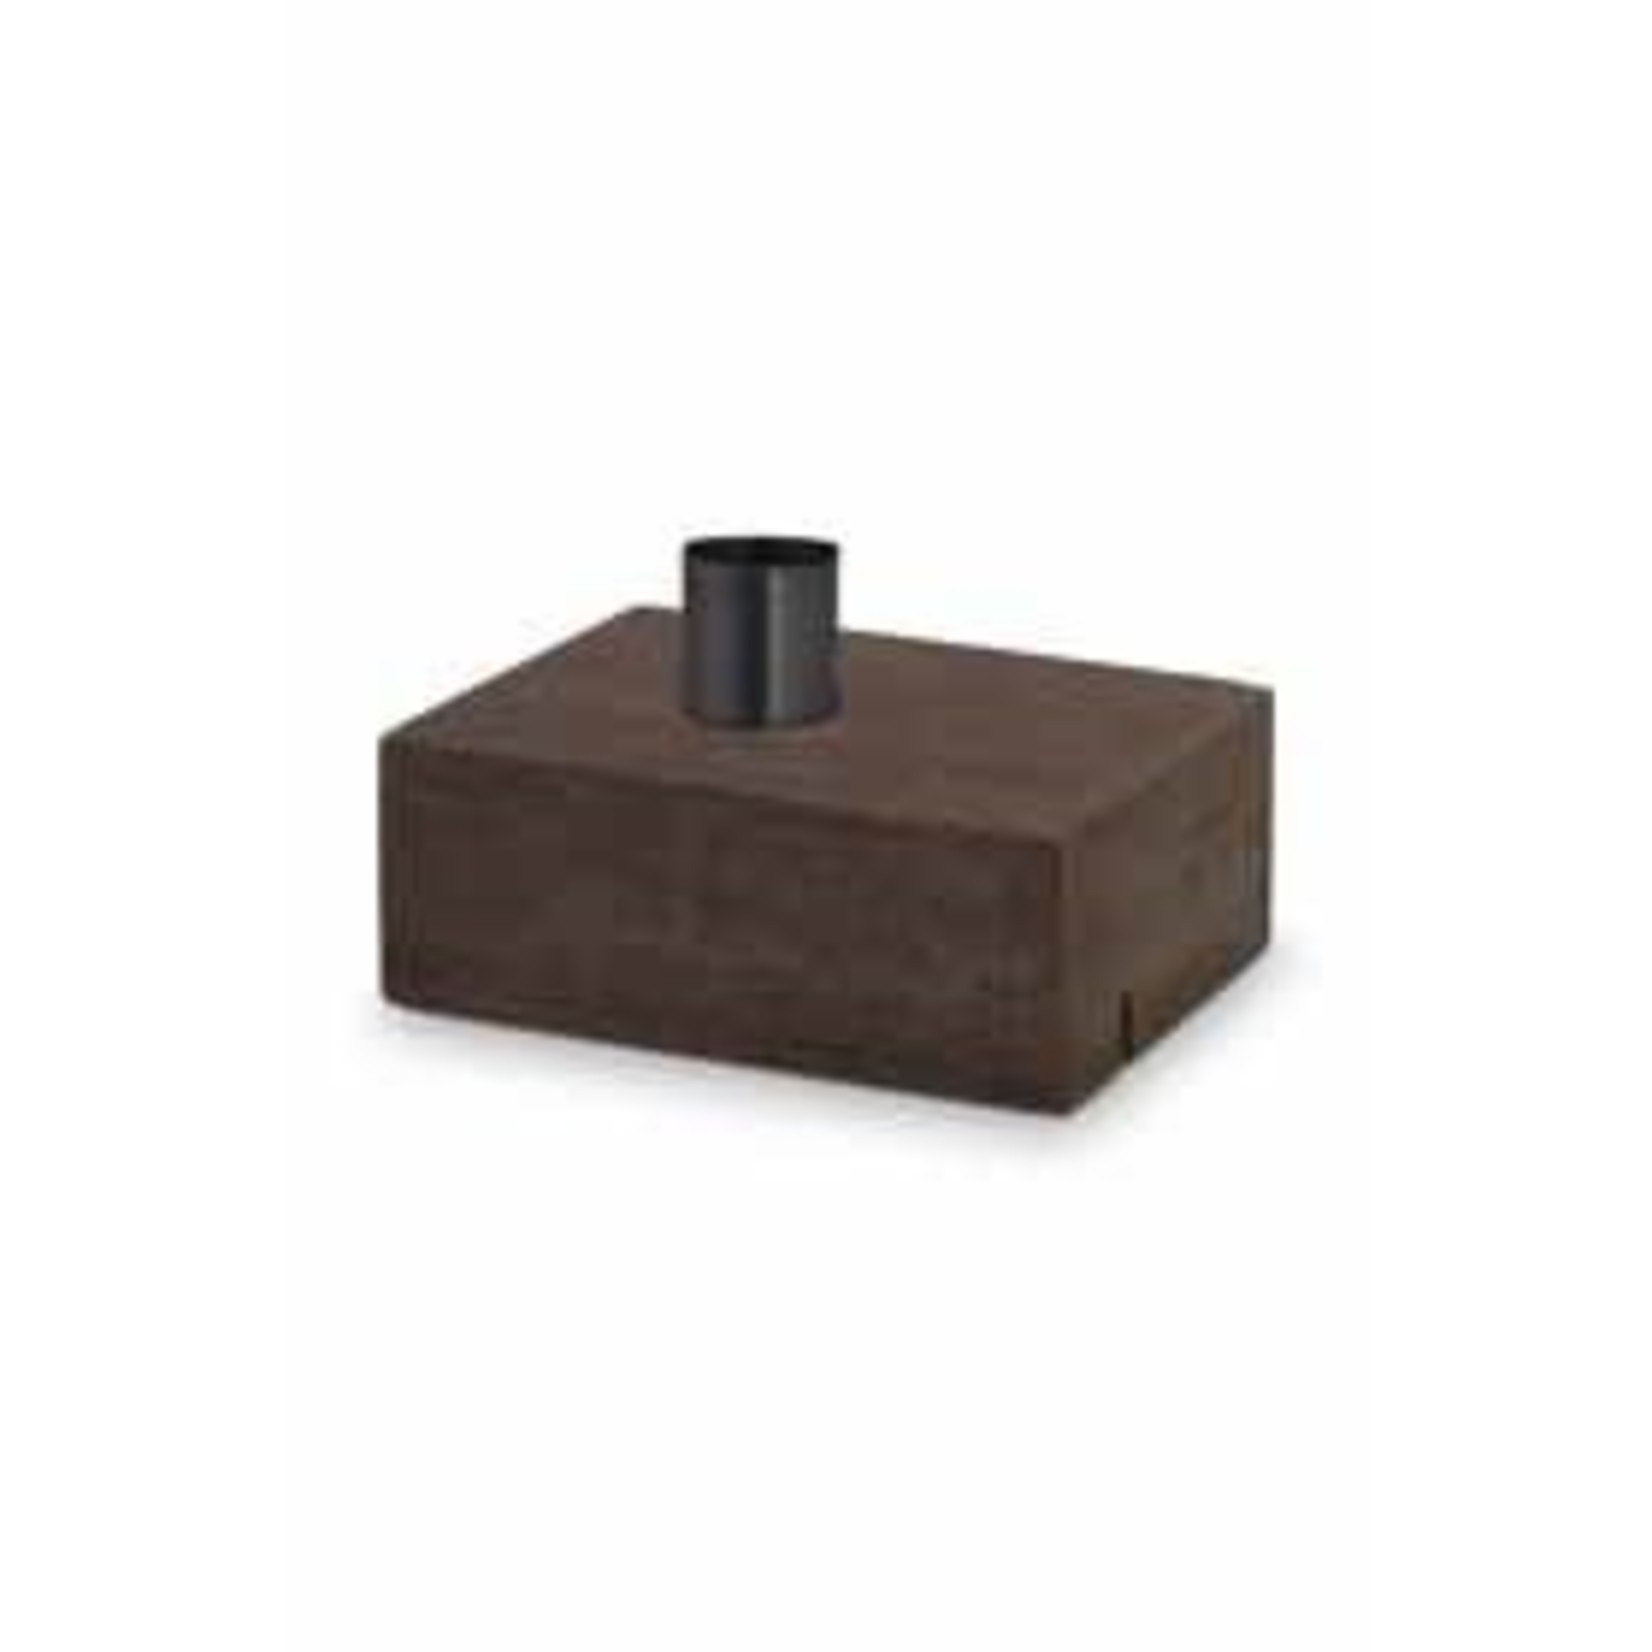 vtwonen Candle Block/Card/Twig Holder Rectangular Wood with Black Cup